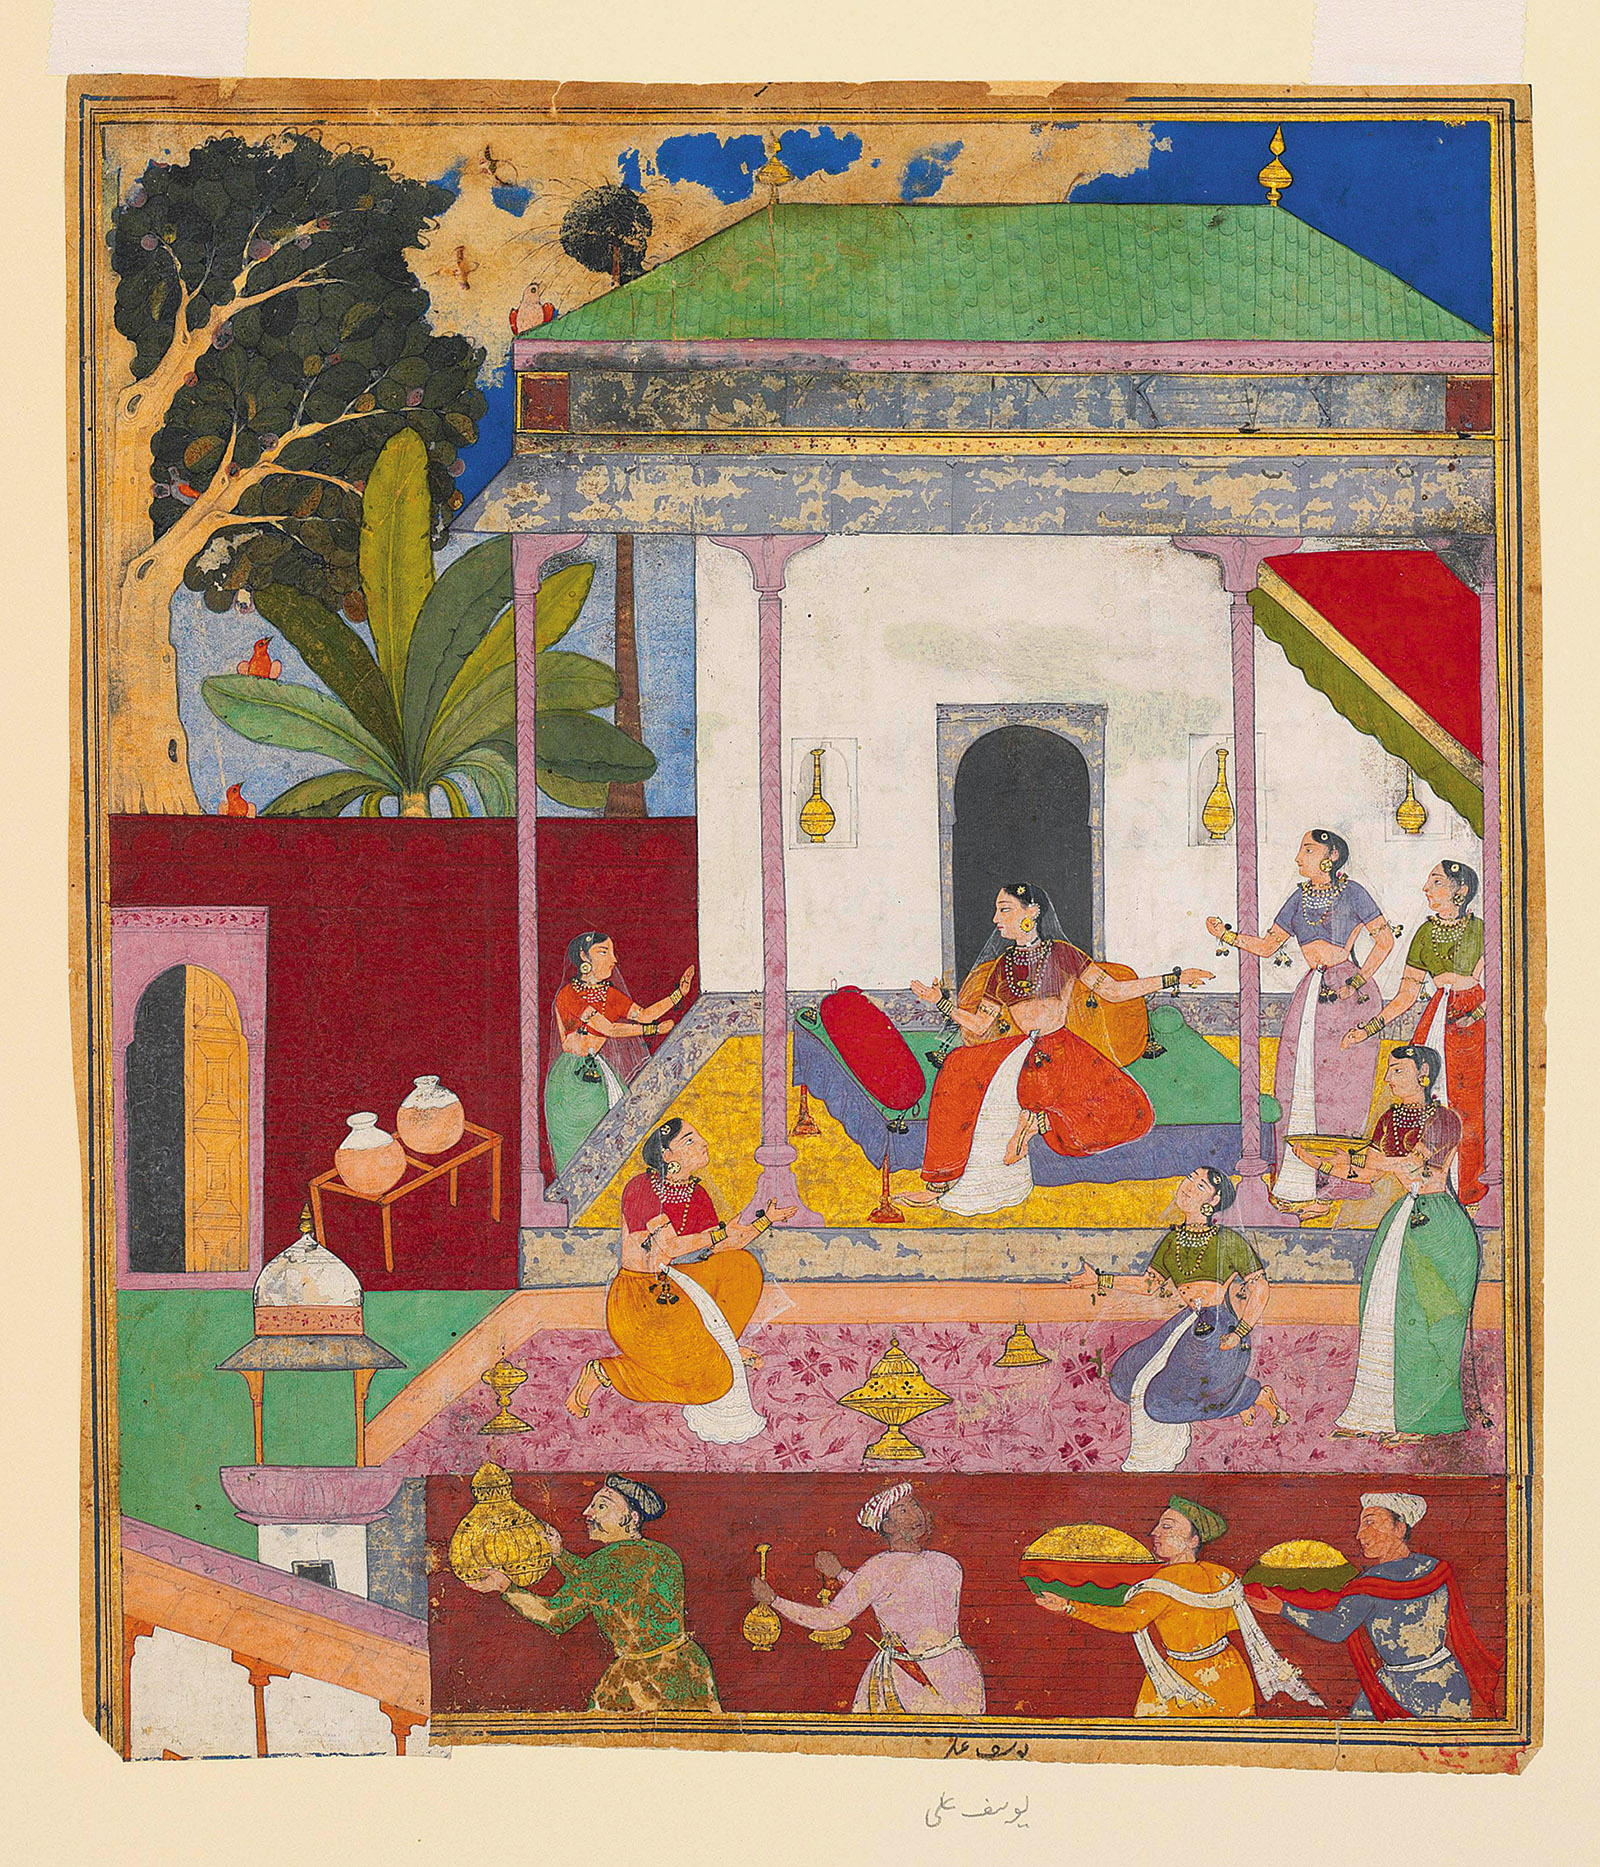 Draupadi and Her Attendants; illustration by Yusuf Ali from the Razmnama, a Persian translation of the Mahabharata